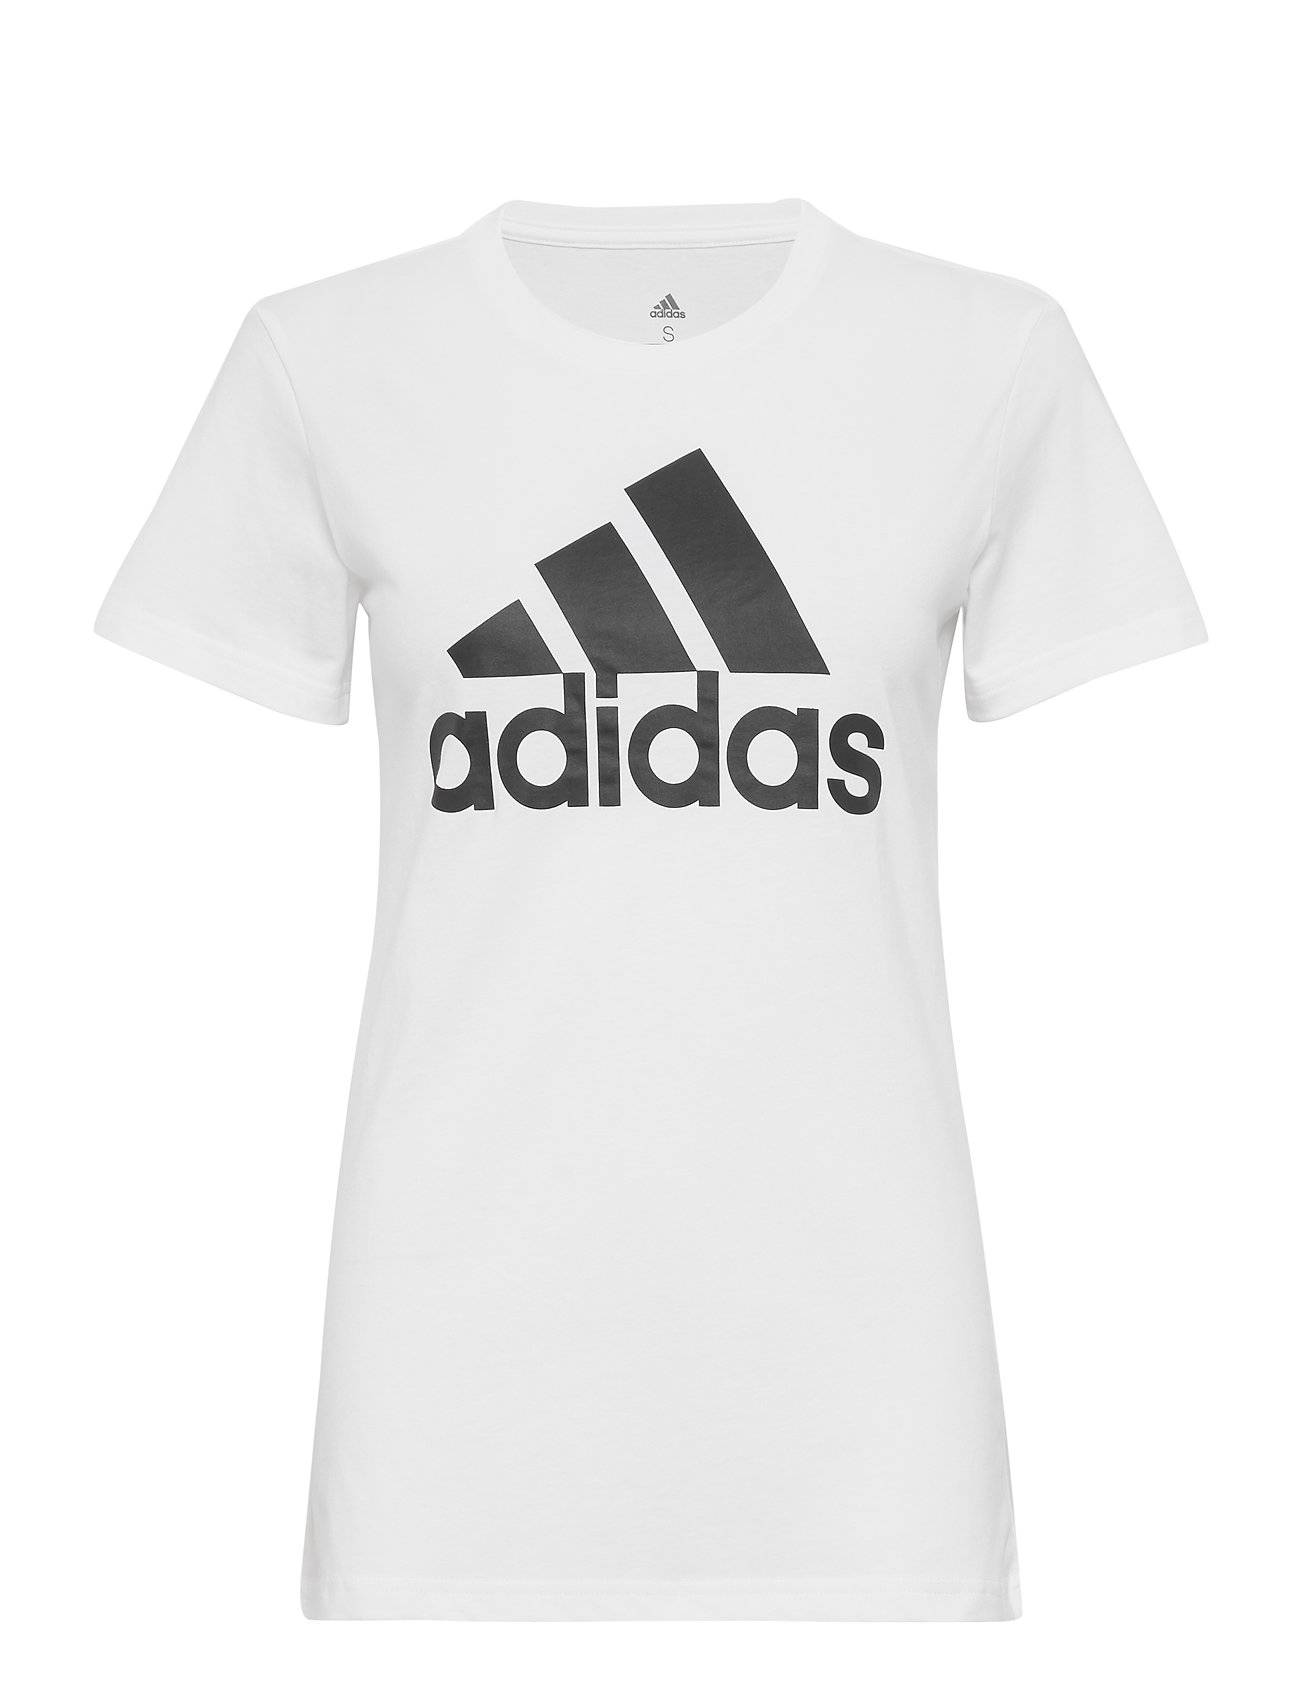 Image of adidas Performance W Bos Co Tee T-shirts & Tops Short-sleeved Valkoinen Adidas Performance